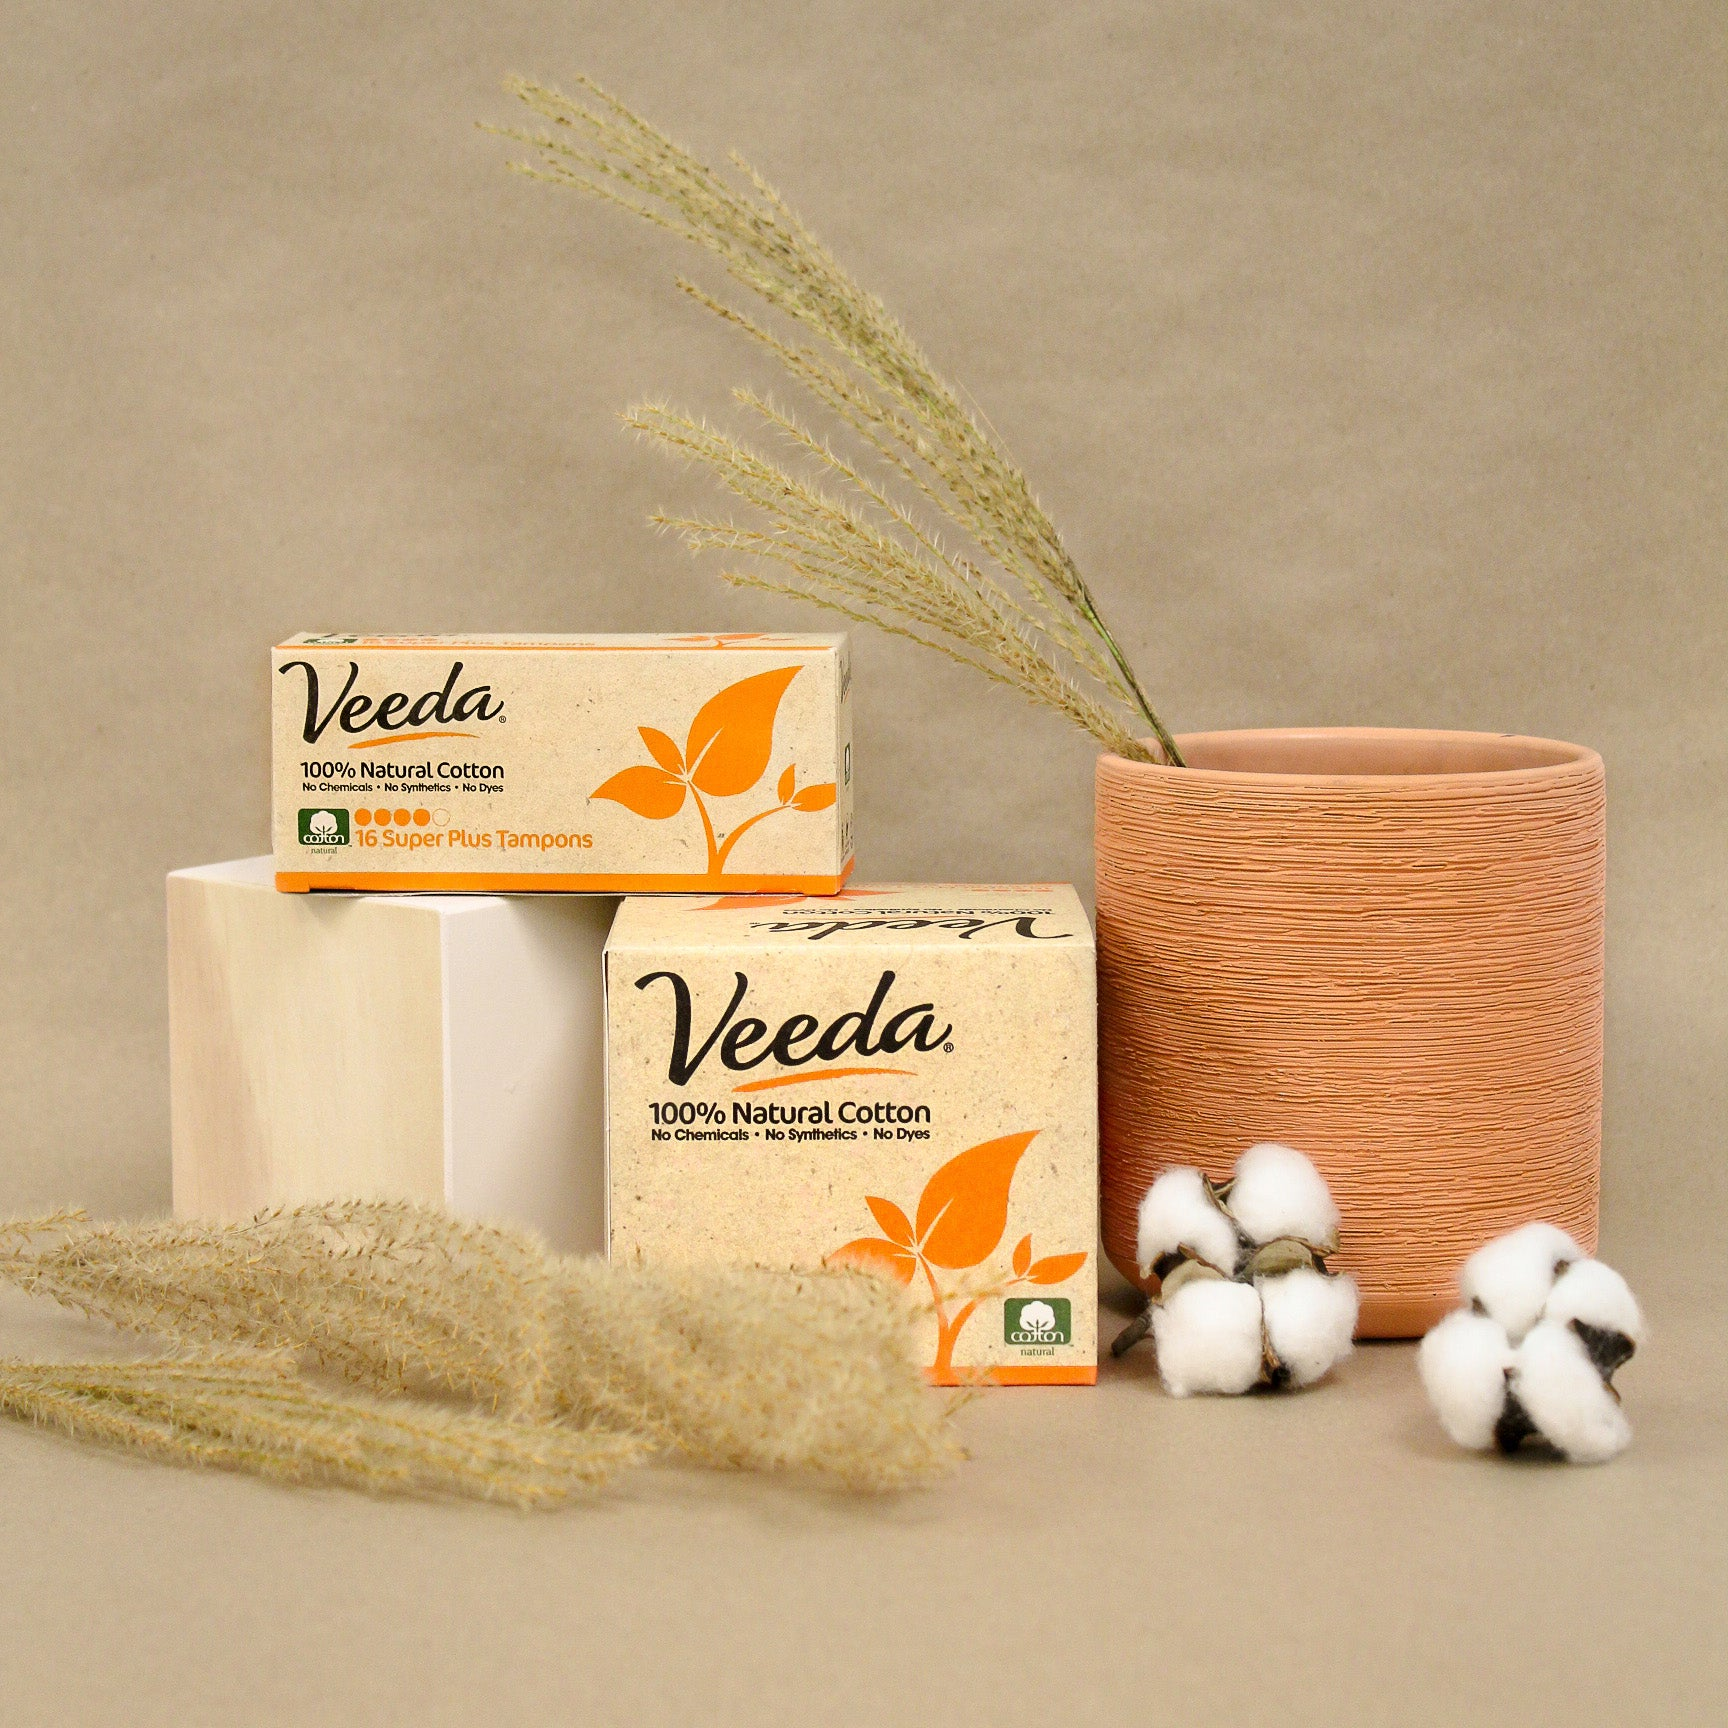 Veeda Natural Fem-Care Products